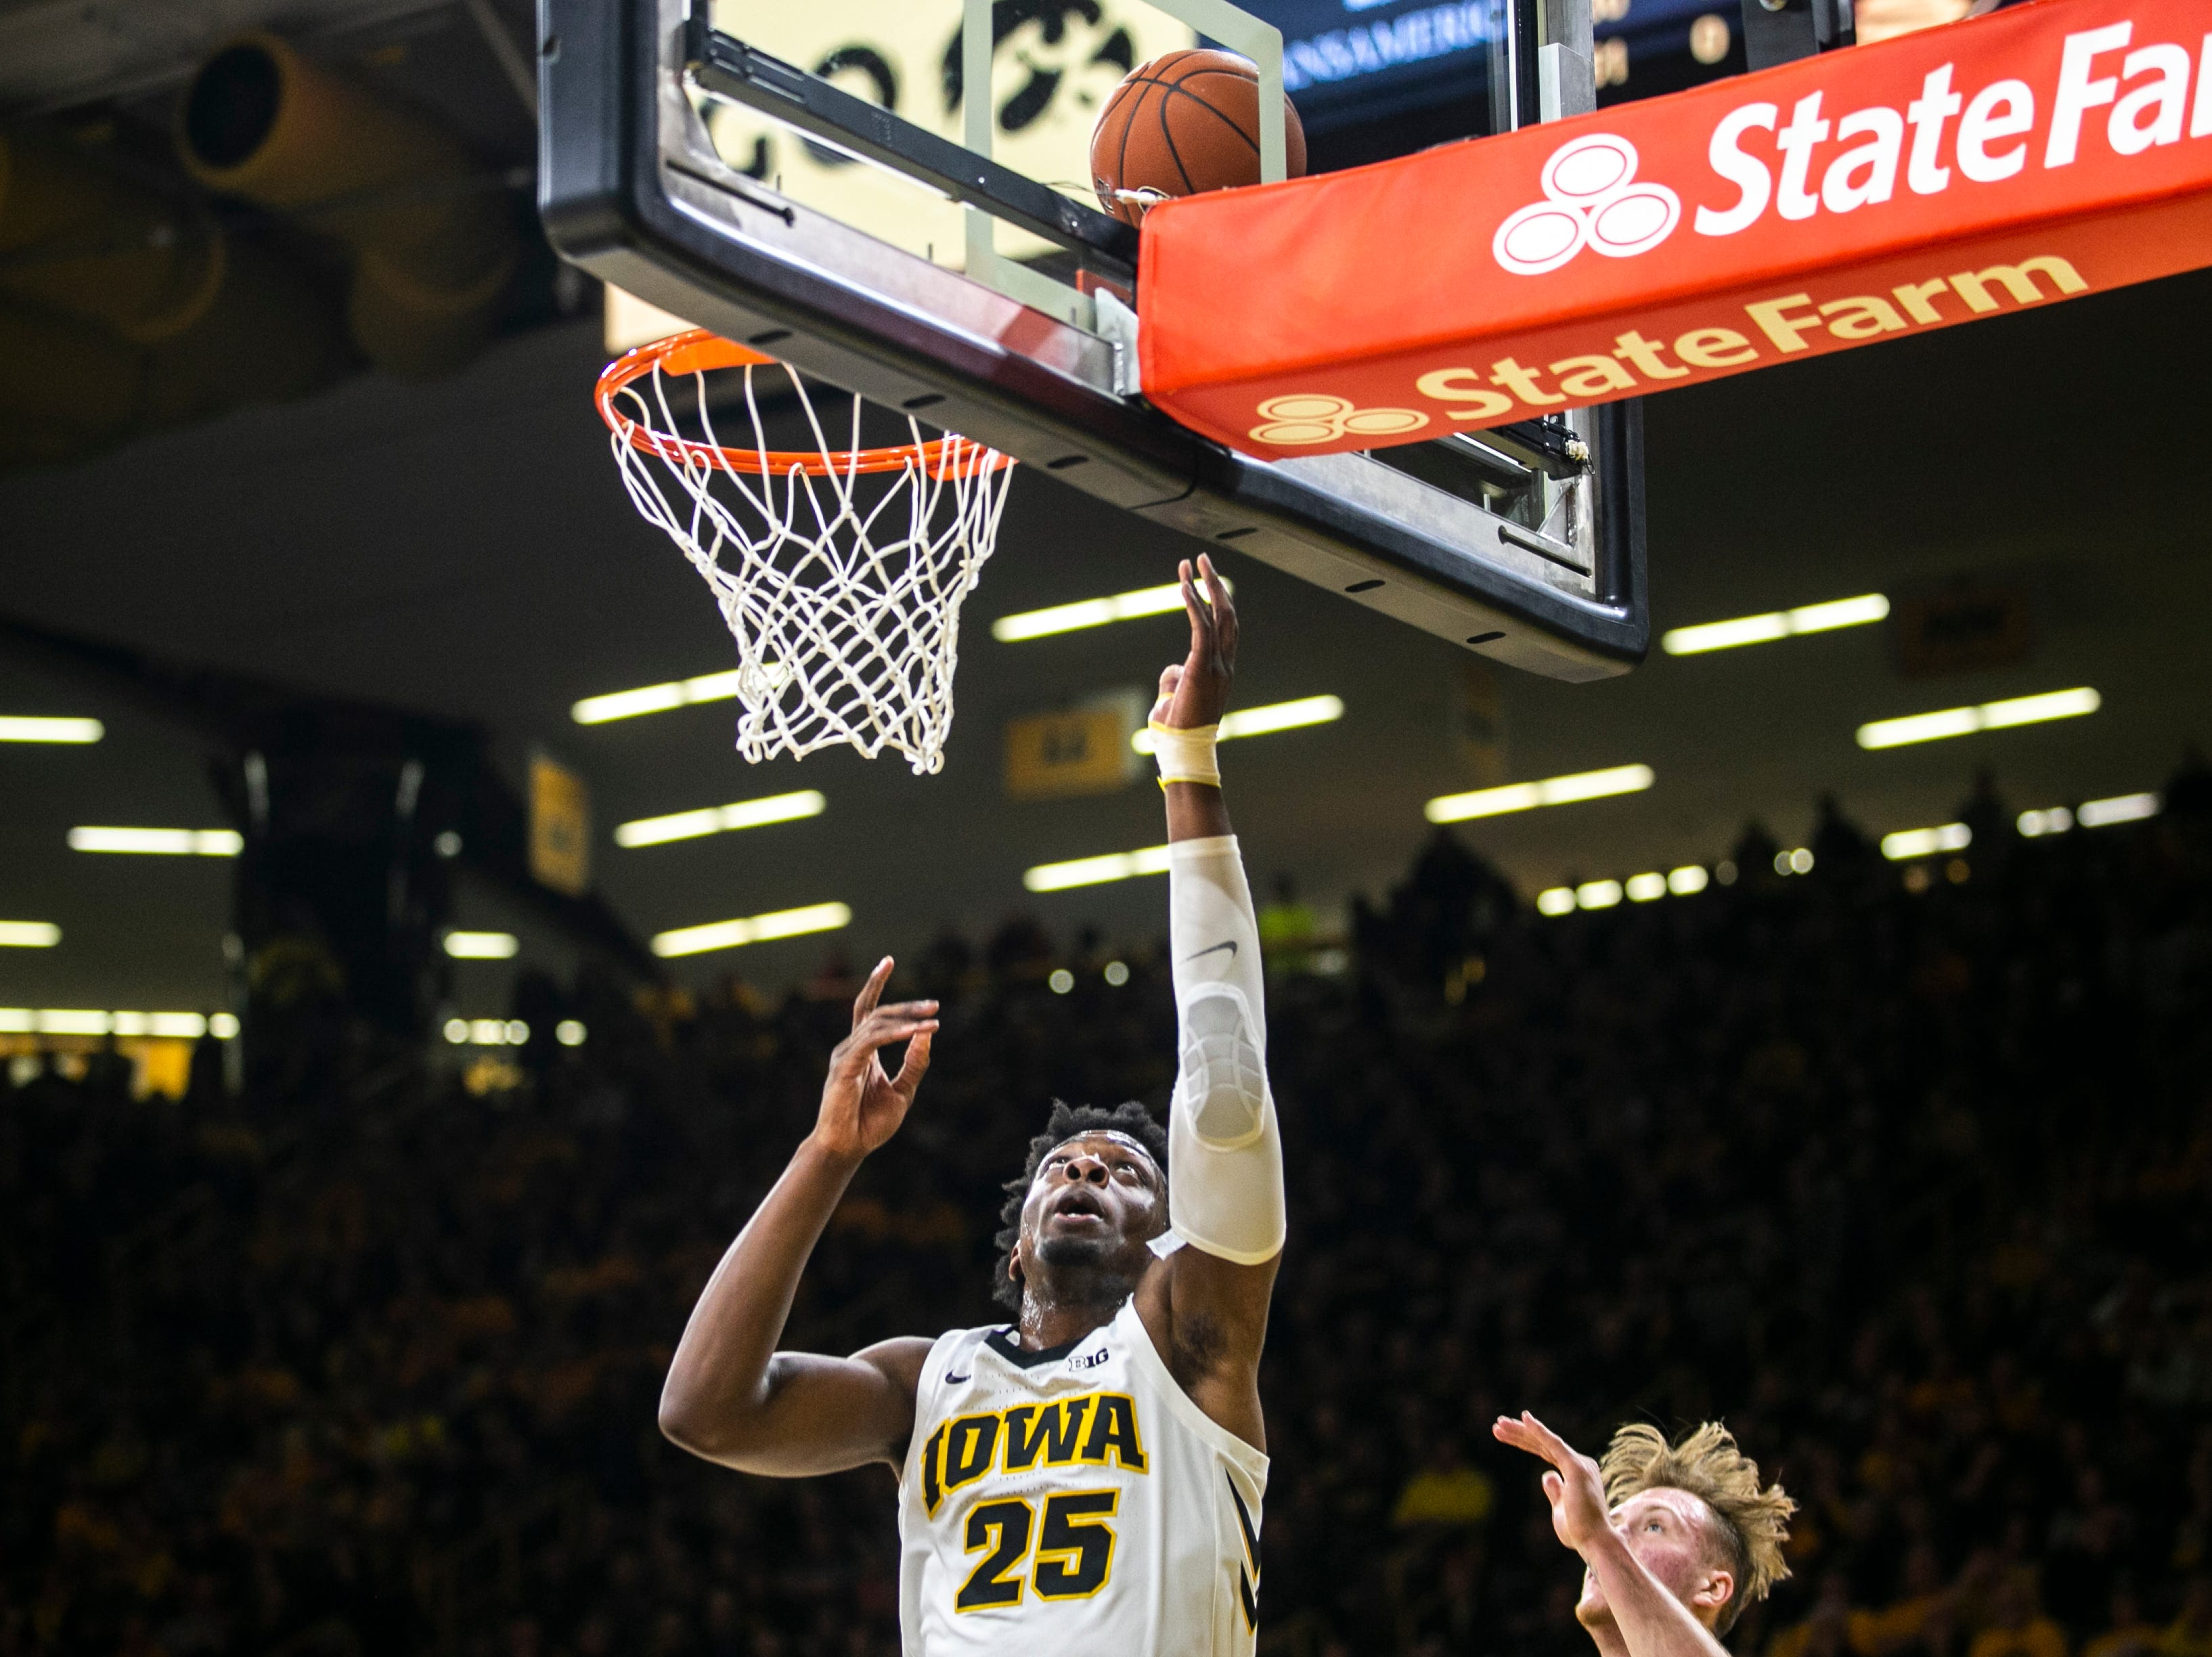 Iowa forward Tyler Cook (25) makes a layup during a NCAA Big Ten Conference men's basketball game on Friday, Feb. 1, 2019, at Carver-Hawkeye Arena in Iowa City, Iowa.